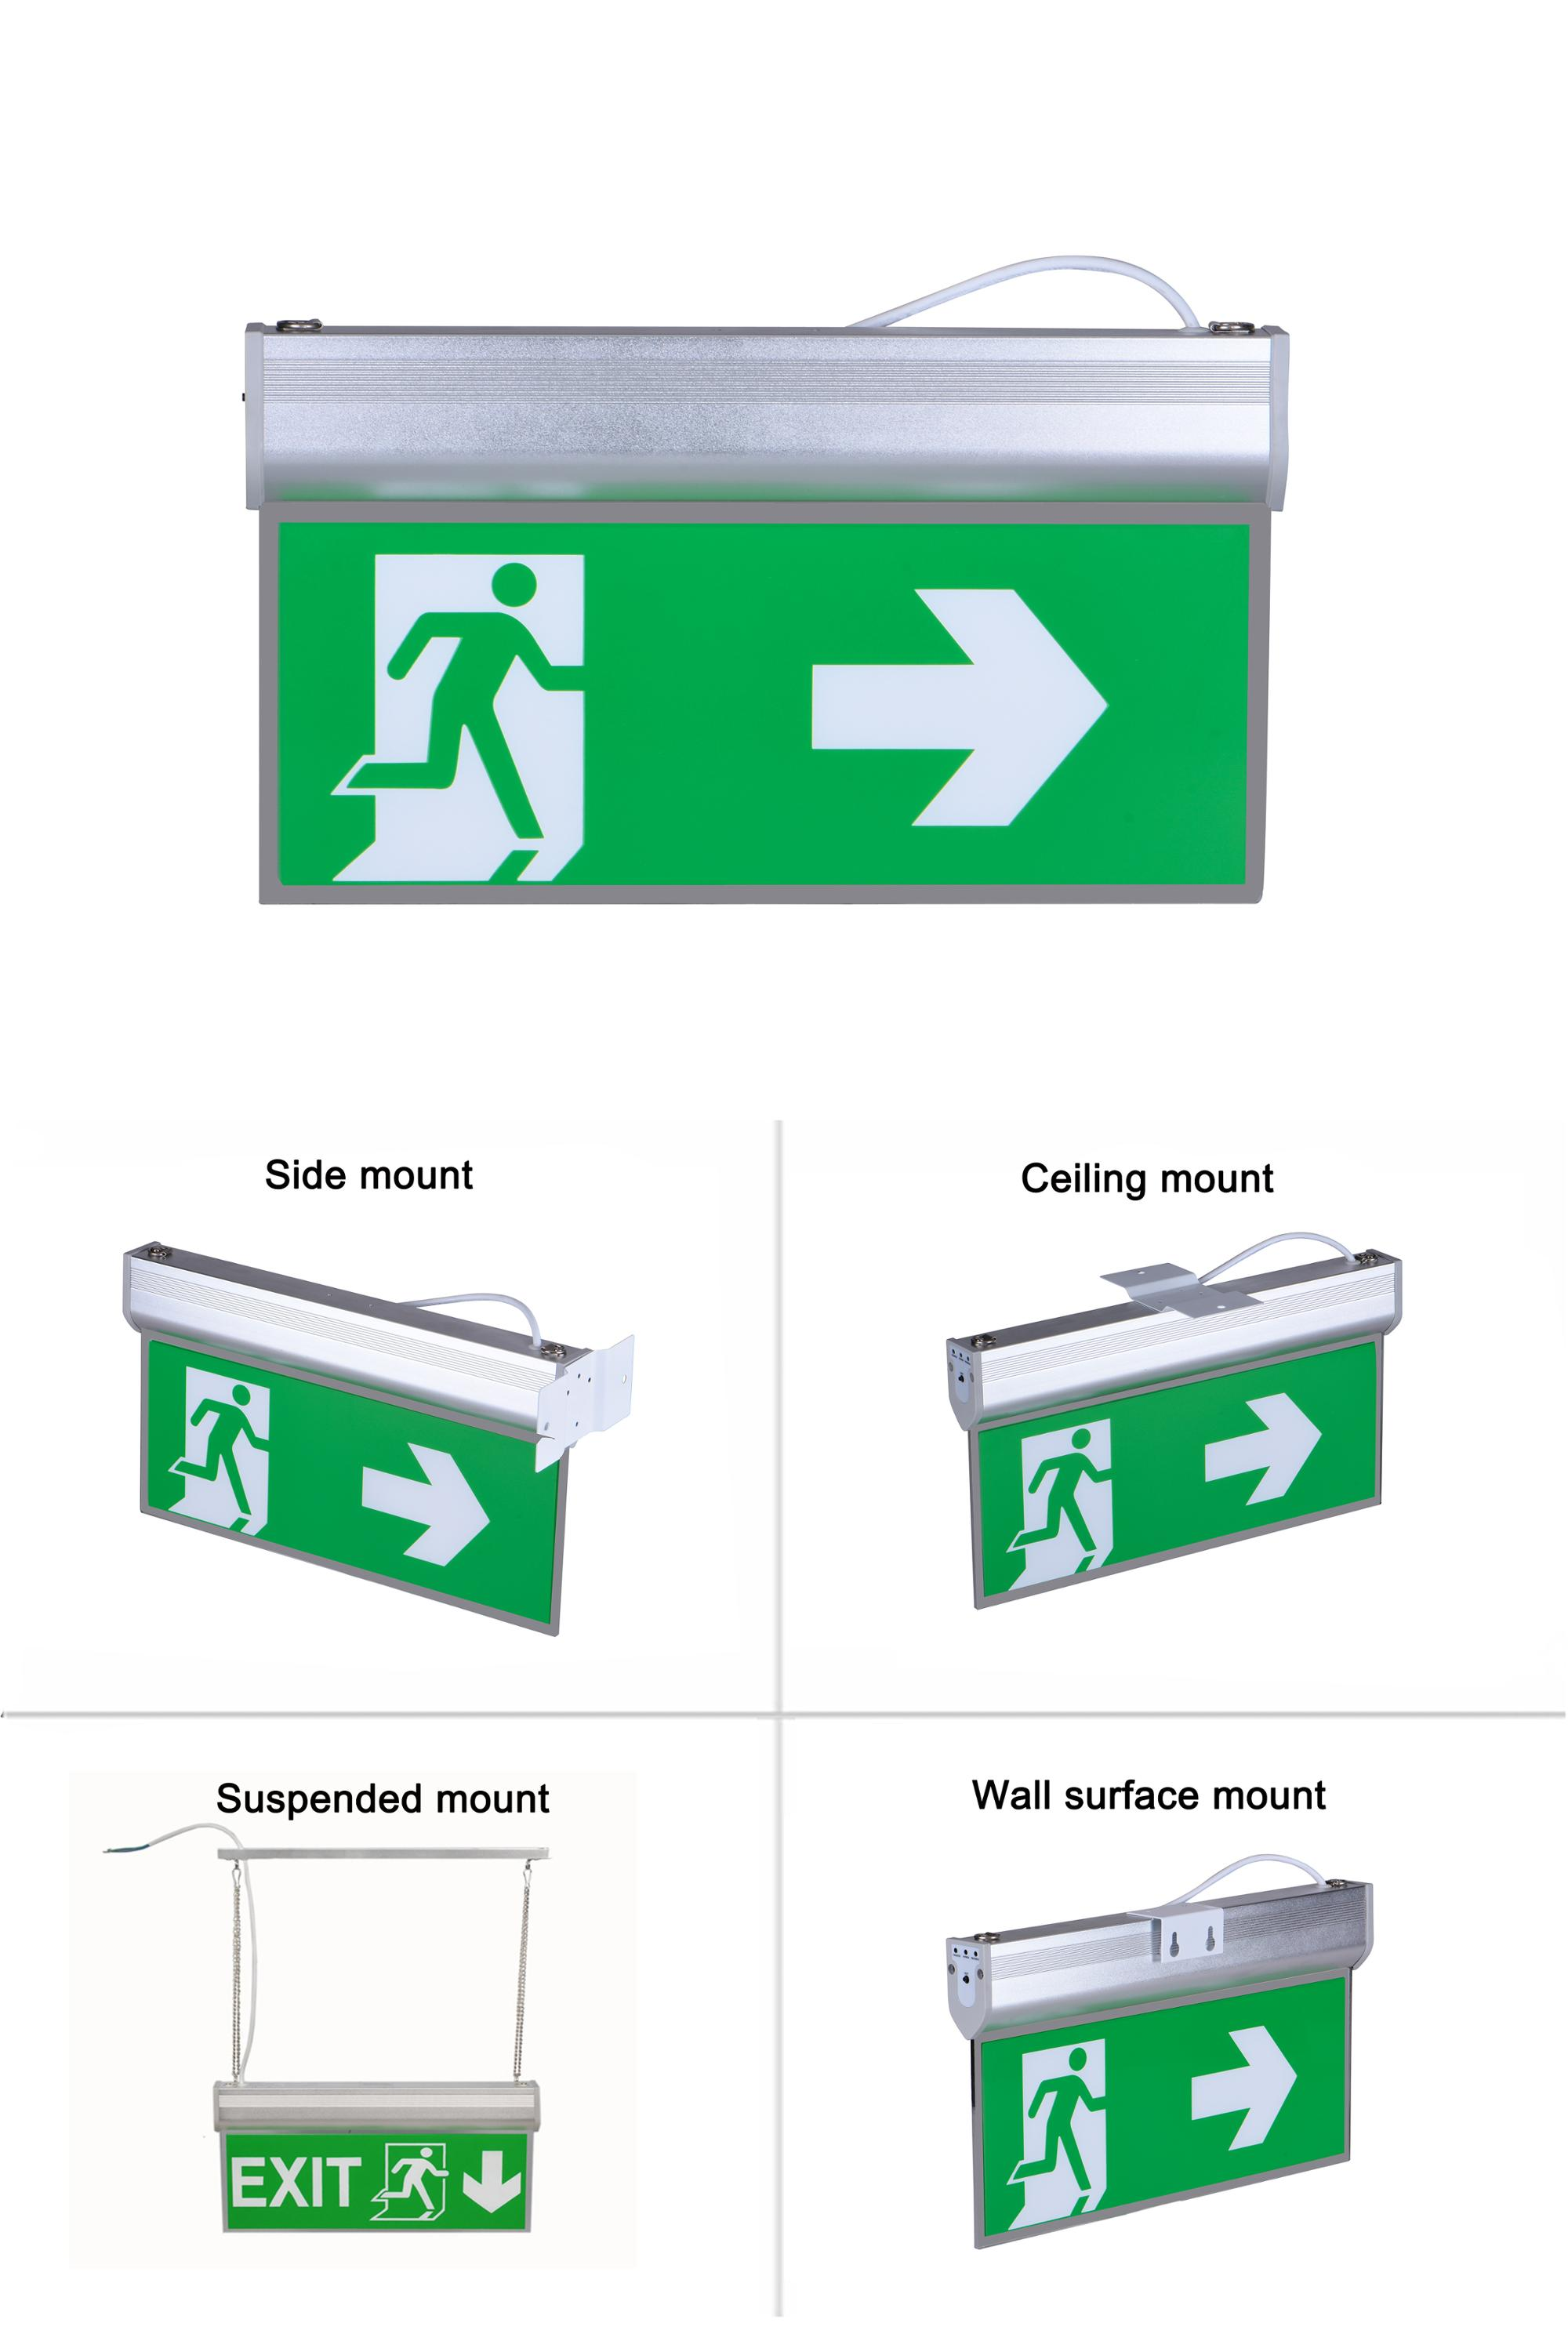 Exit Fire Door Signs CE ROHS SAA 3W Maintained Fire Exit Safety Signs, Fire Safety Signs UK